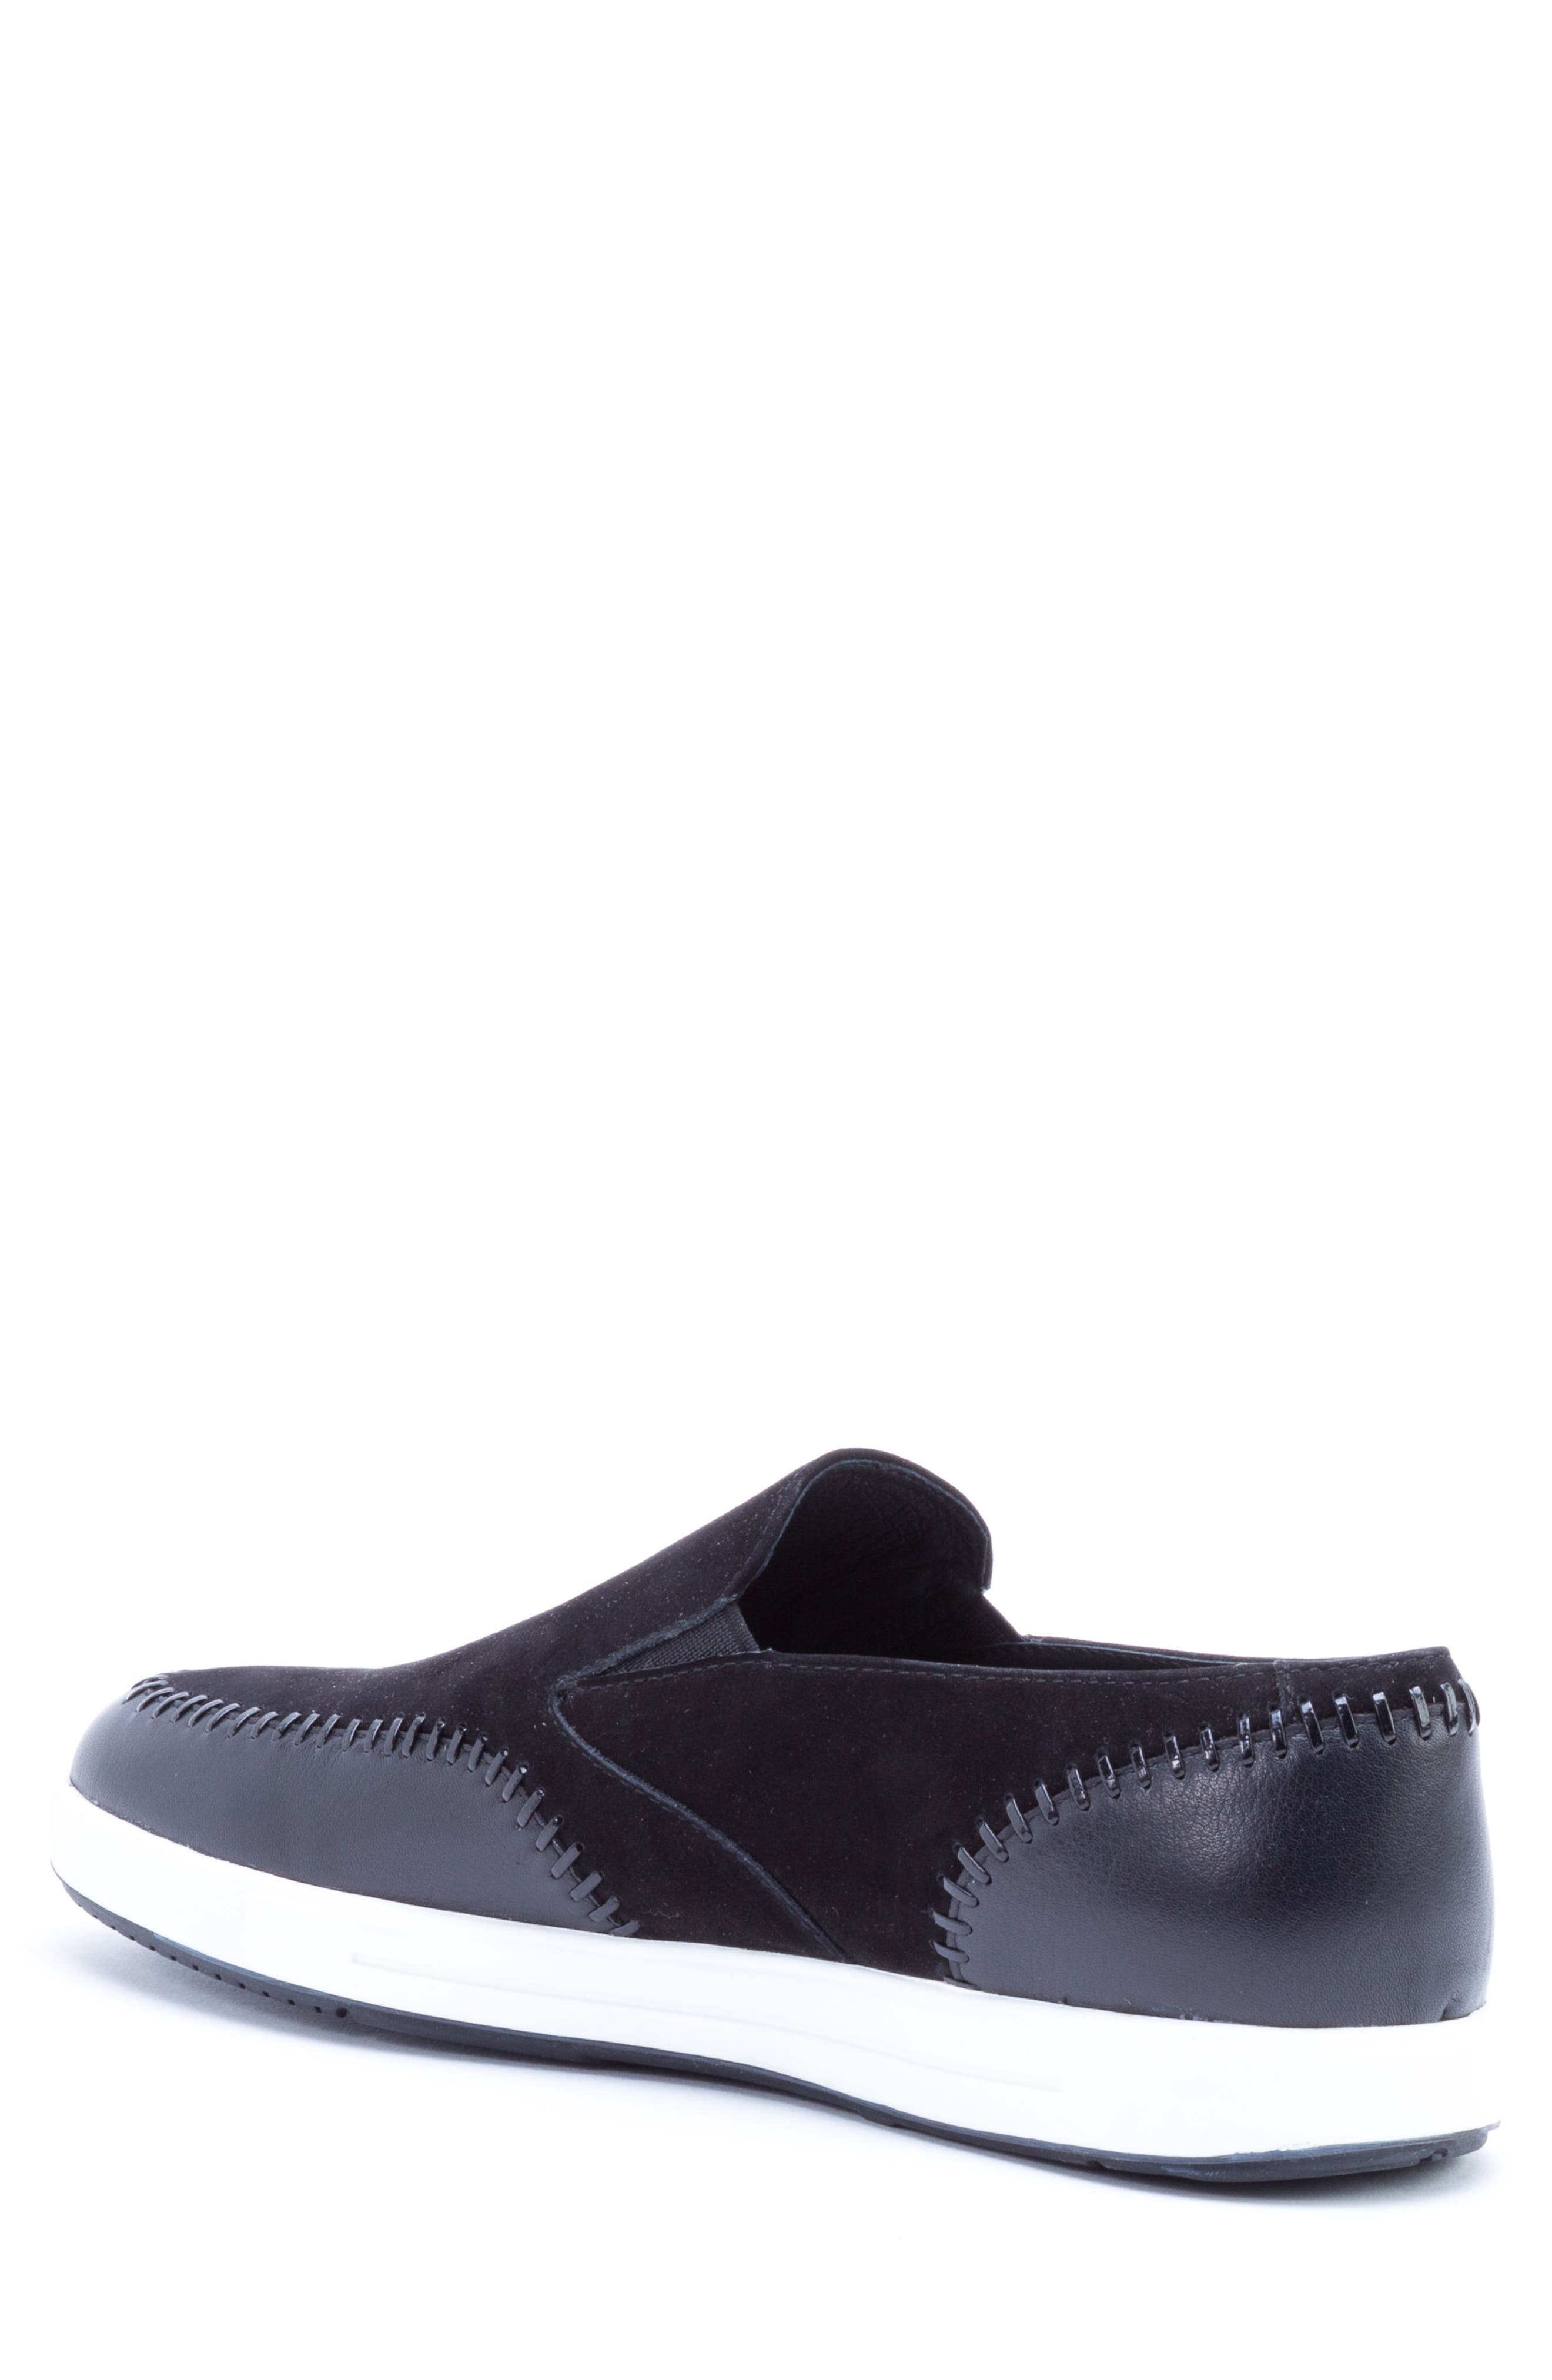 Caravaggio Whipstitched Slip-On Sneaker,                             Alternate thumbnail 2, color,                             Black Suede/ Leather